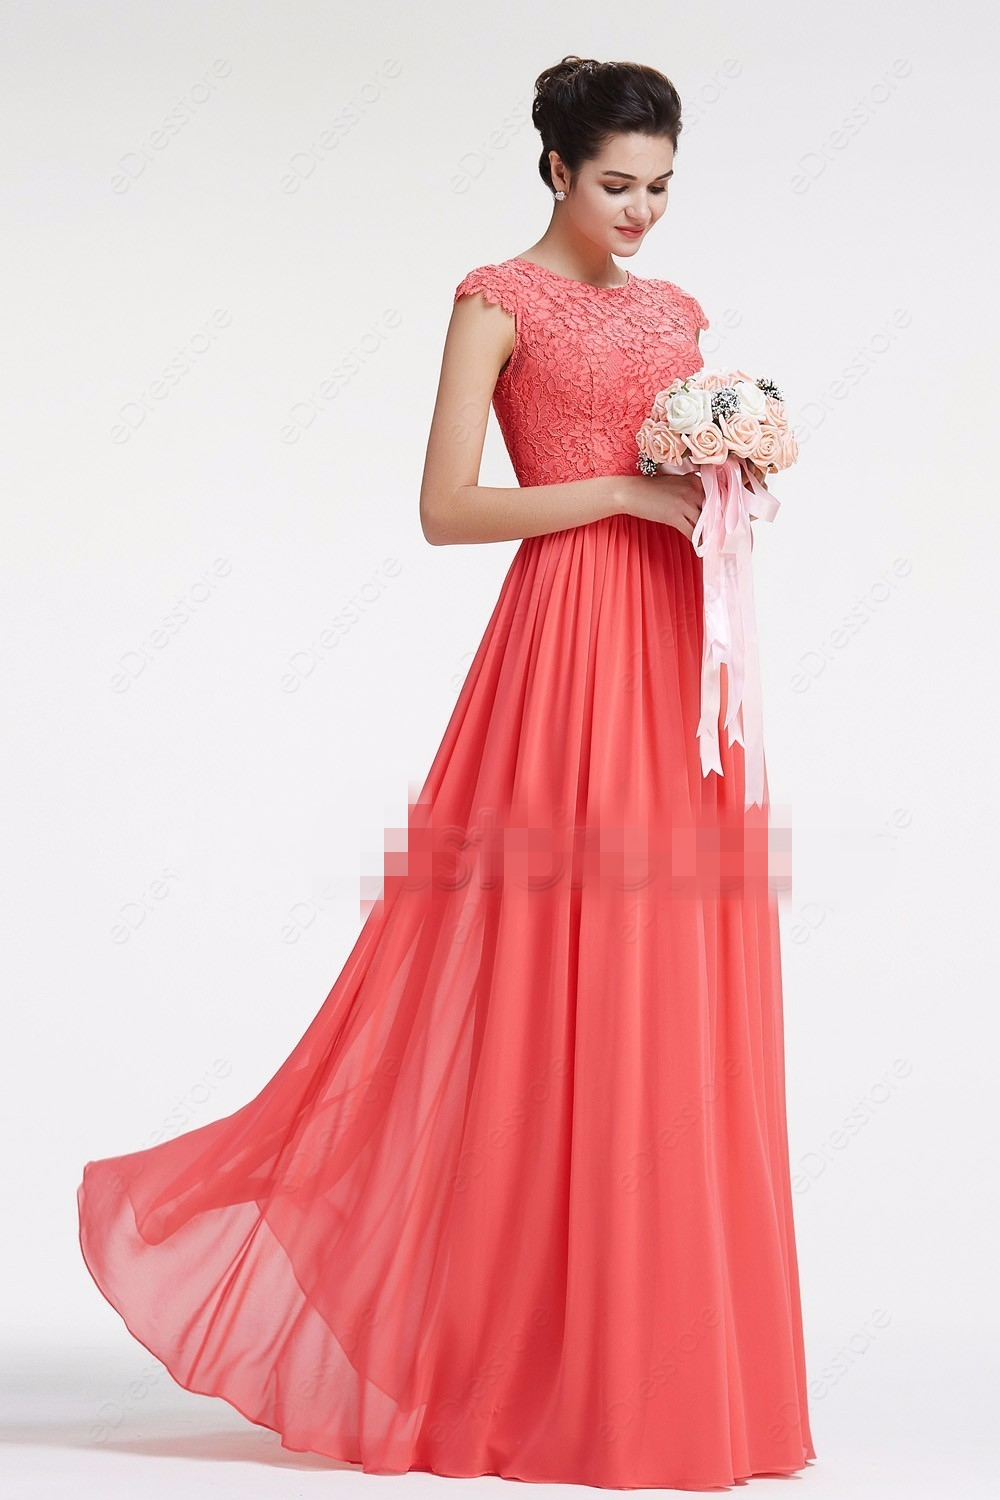 2019 New Coral Long Lace Chiffon Modest   Bridesmaid     Dresses   With Cap Sleeves A-line Floor Length Beach   Bridesmaid   Gowns Summer